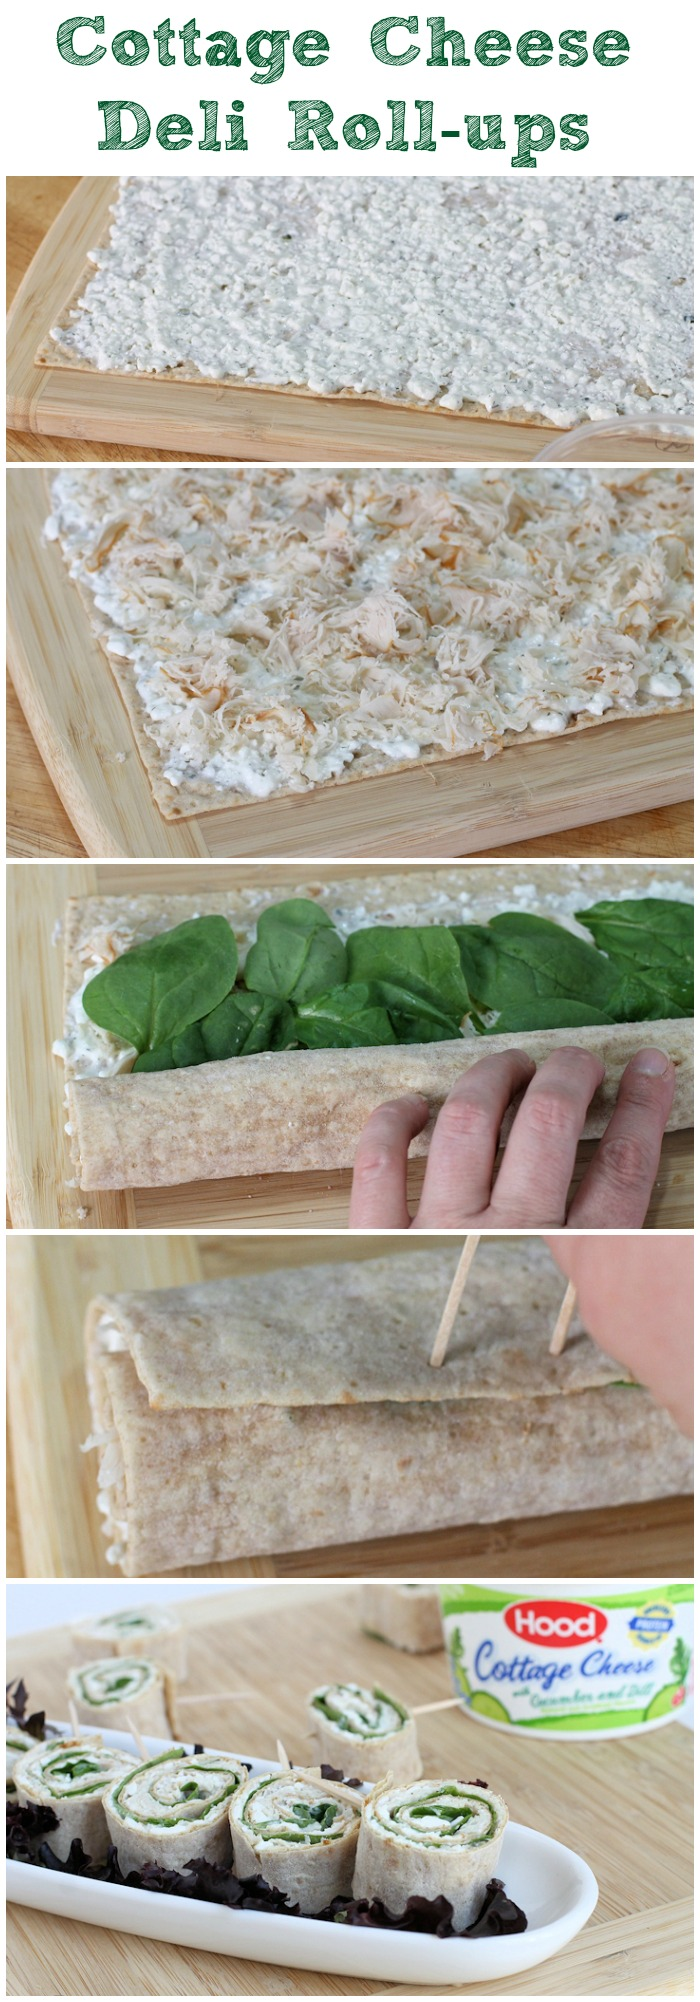 cottage cheese deli roll ups